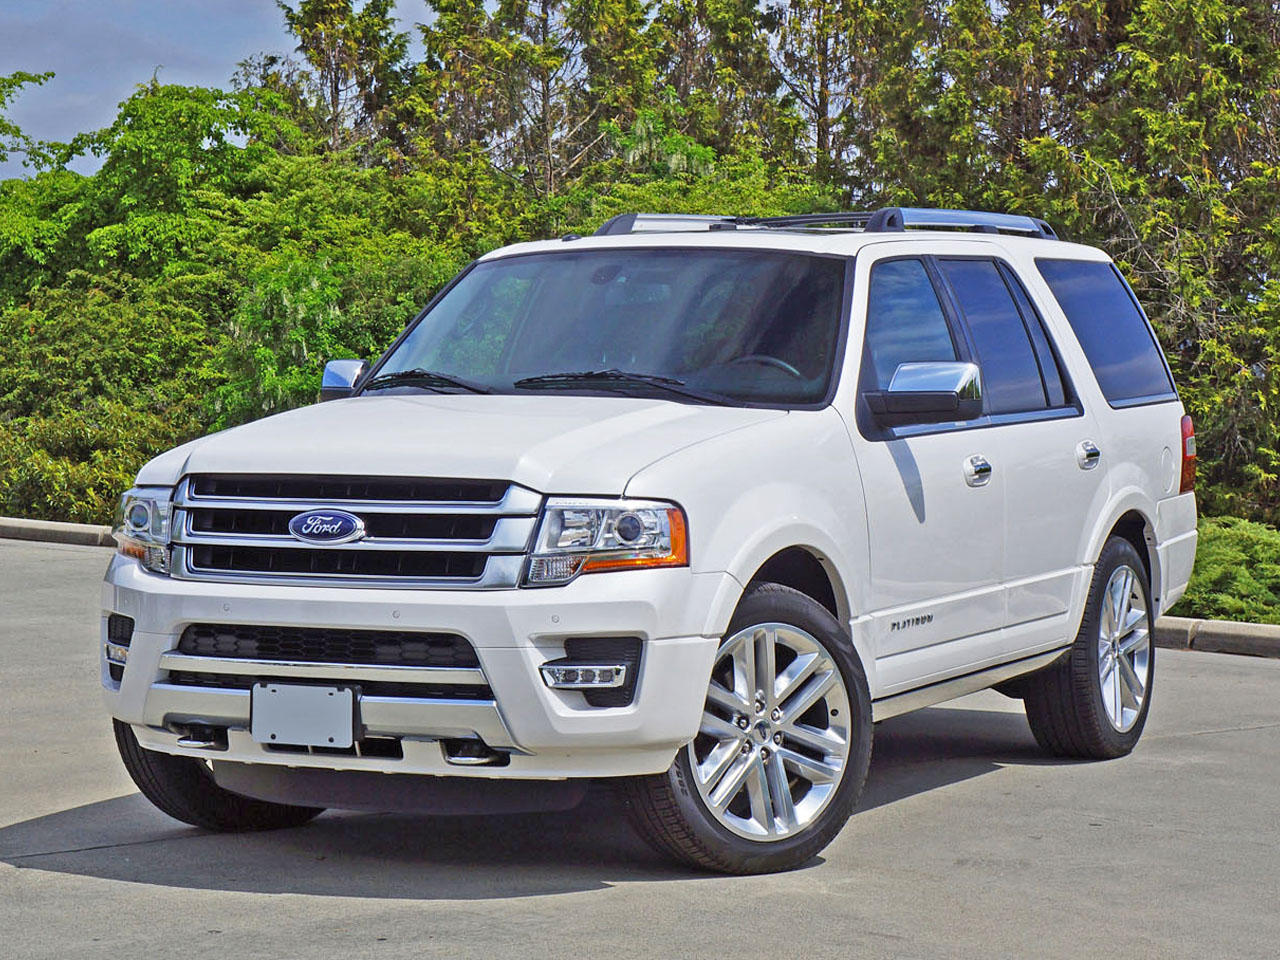 2015 ford expedition platinum road test review carcostcanada